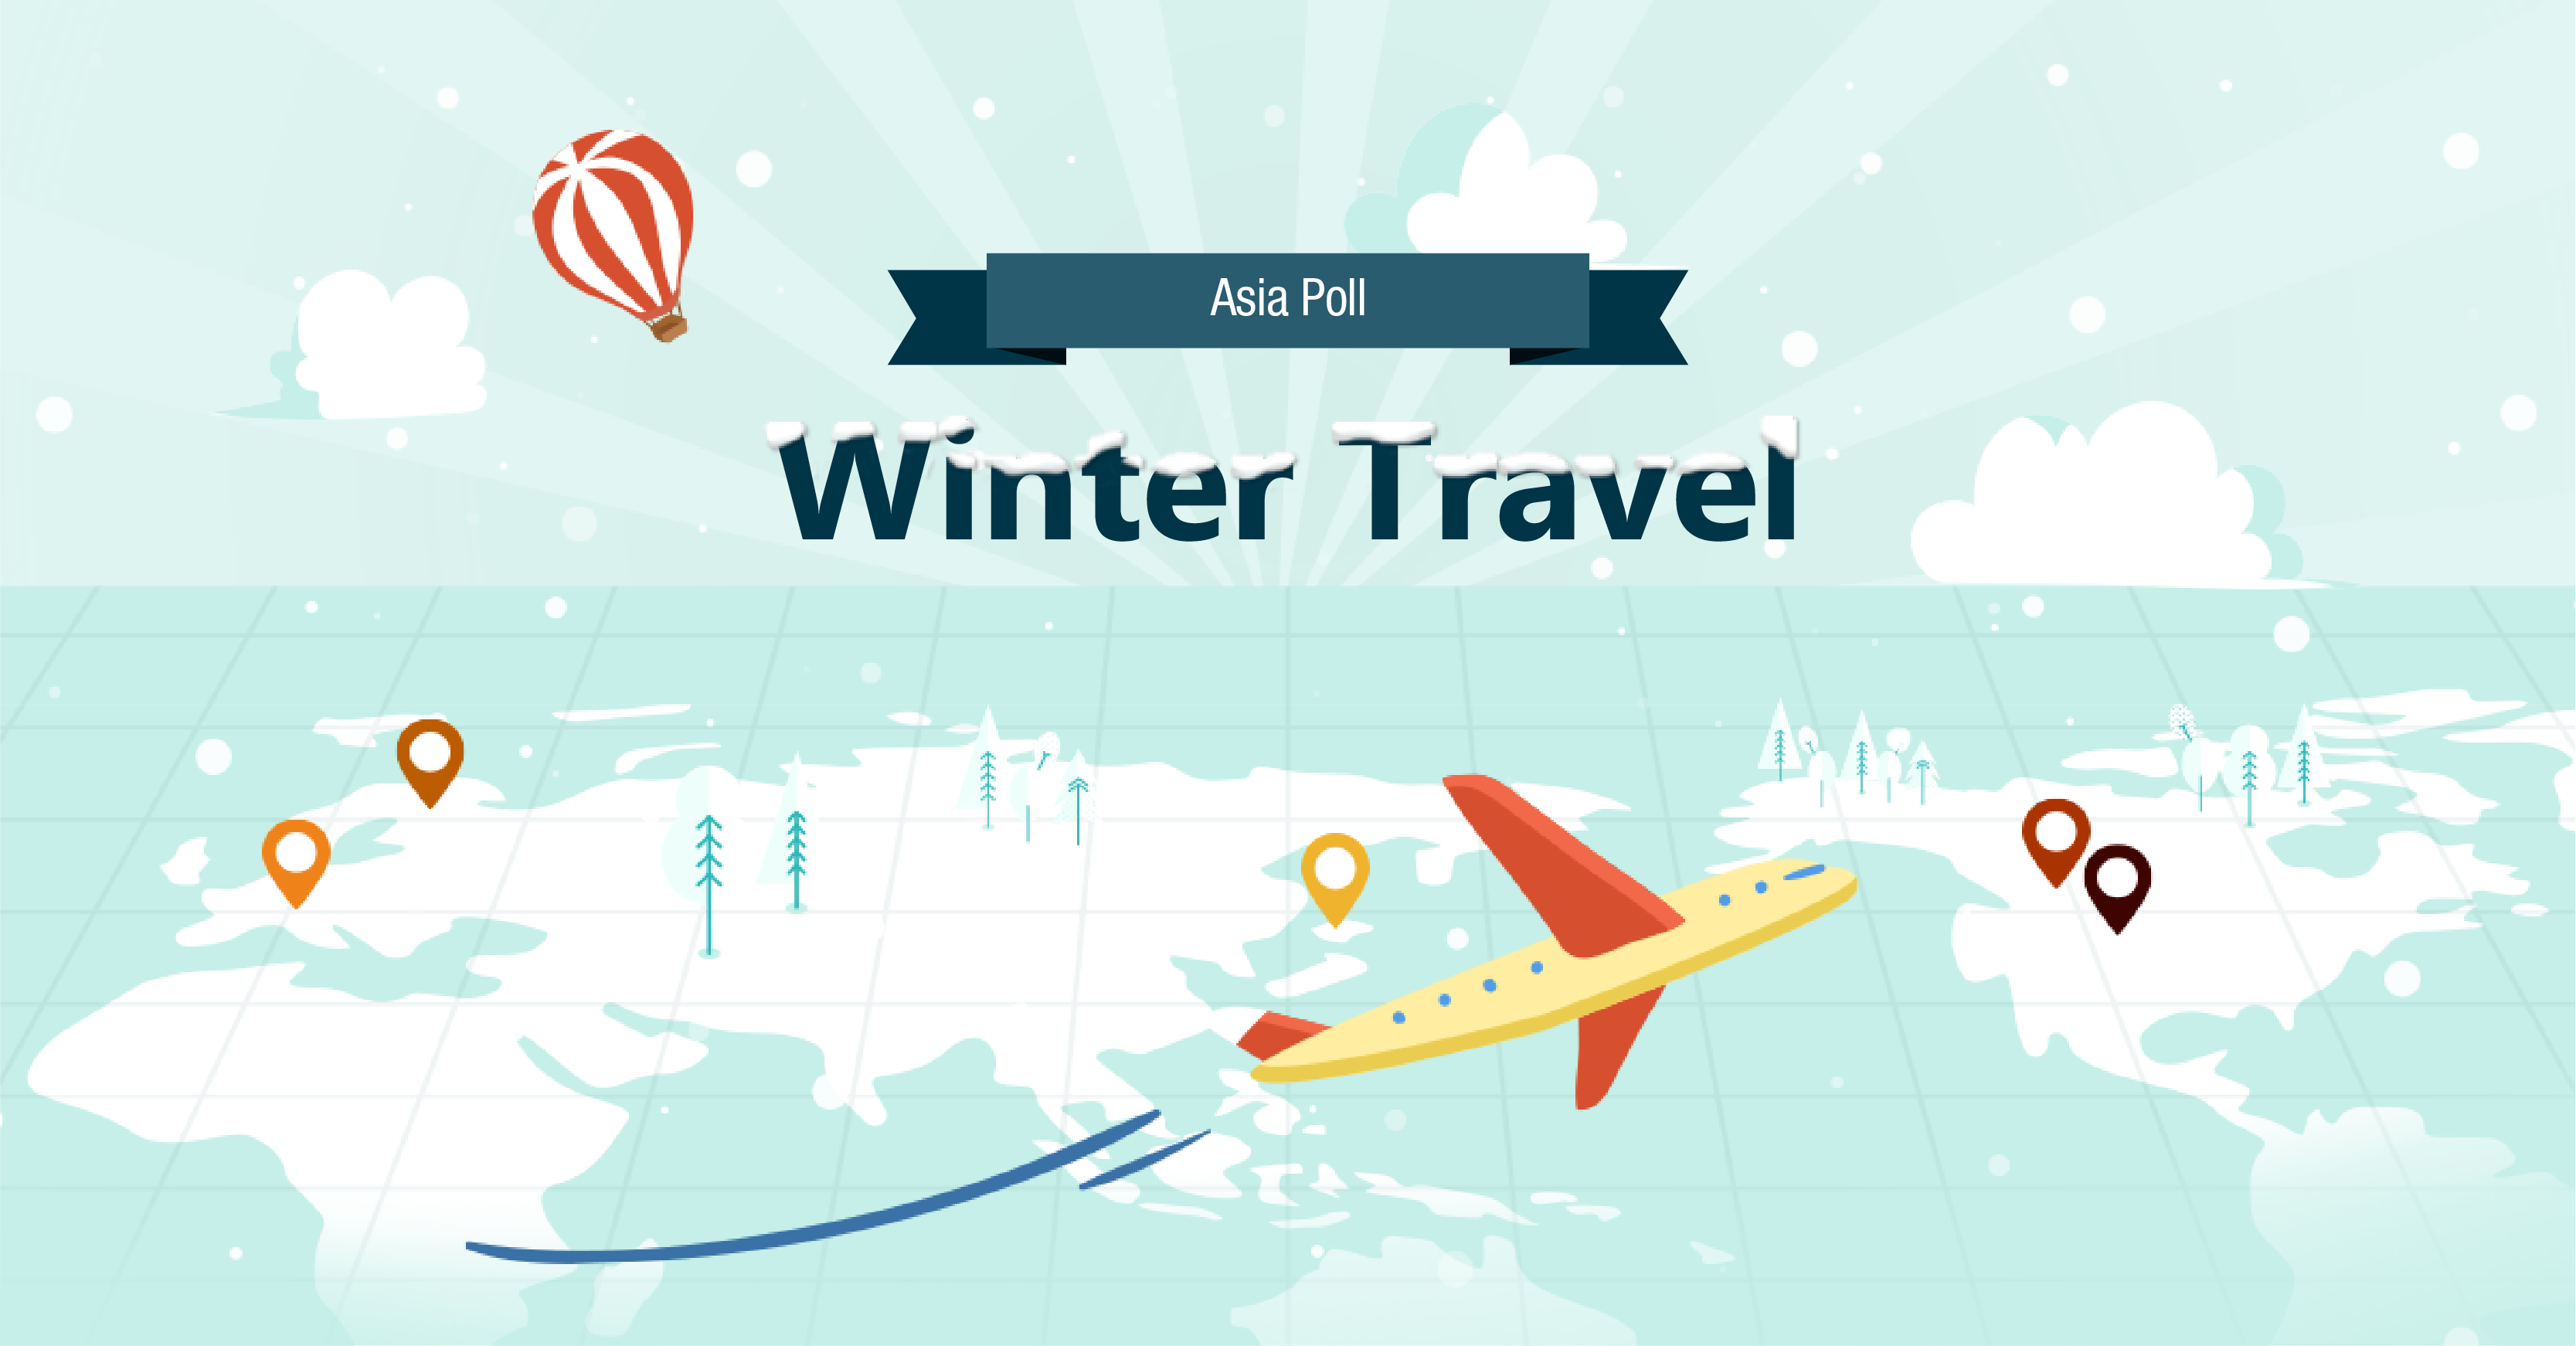 Winter travel report